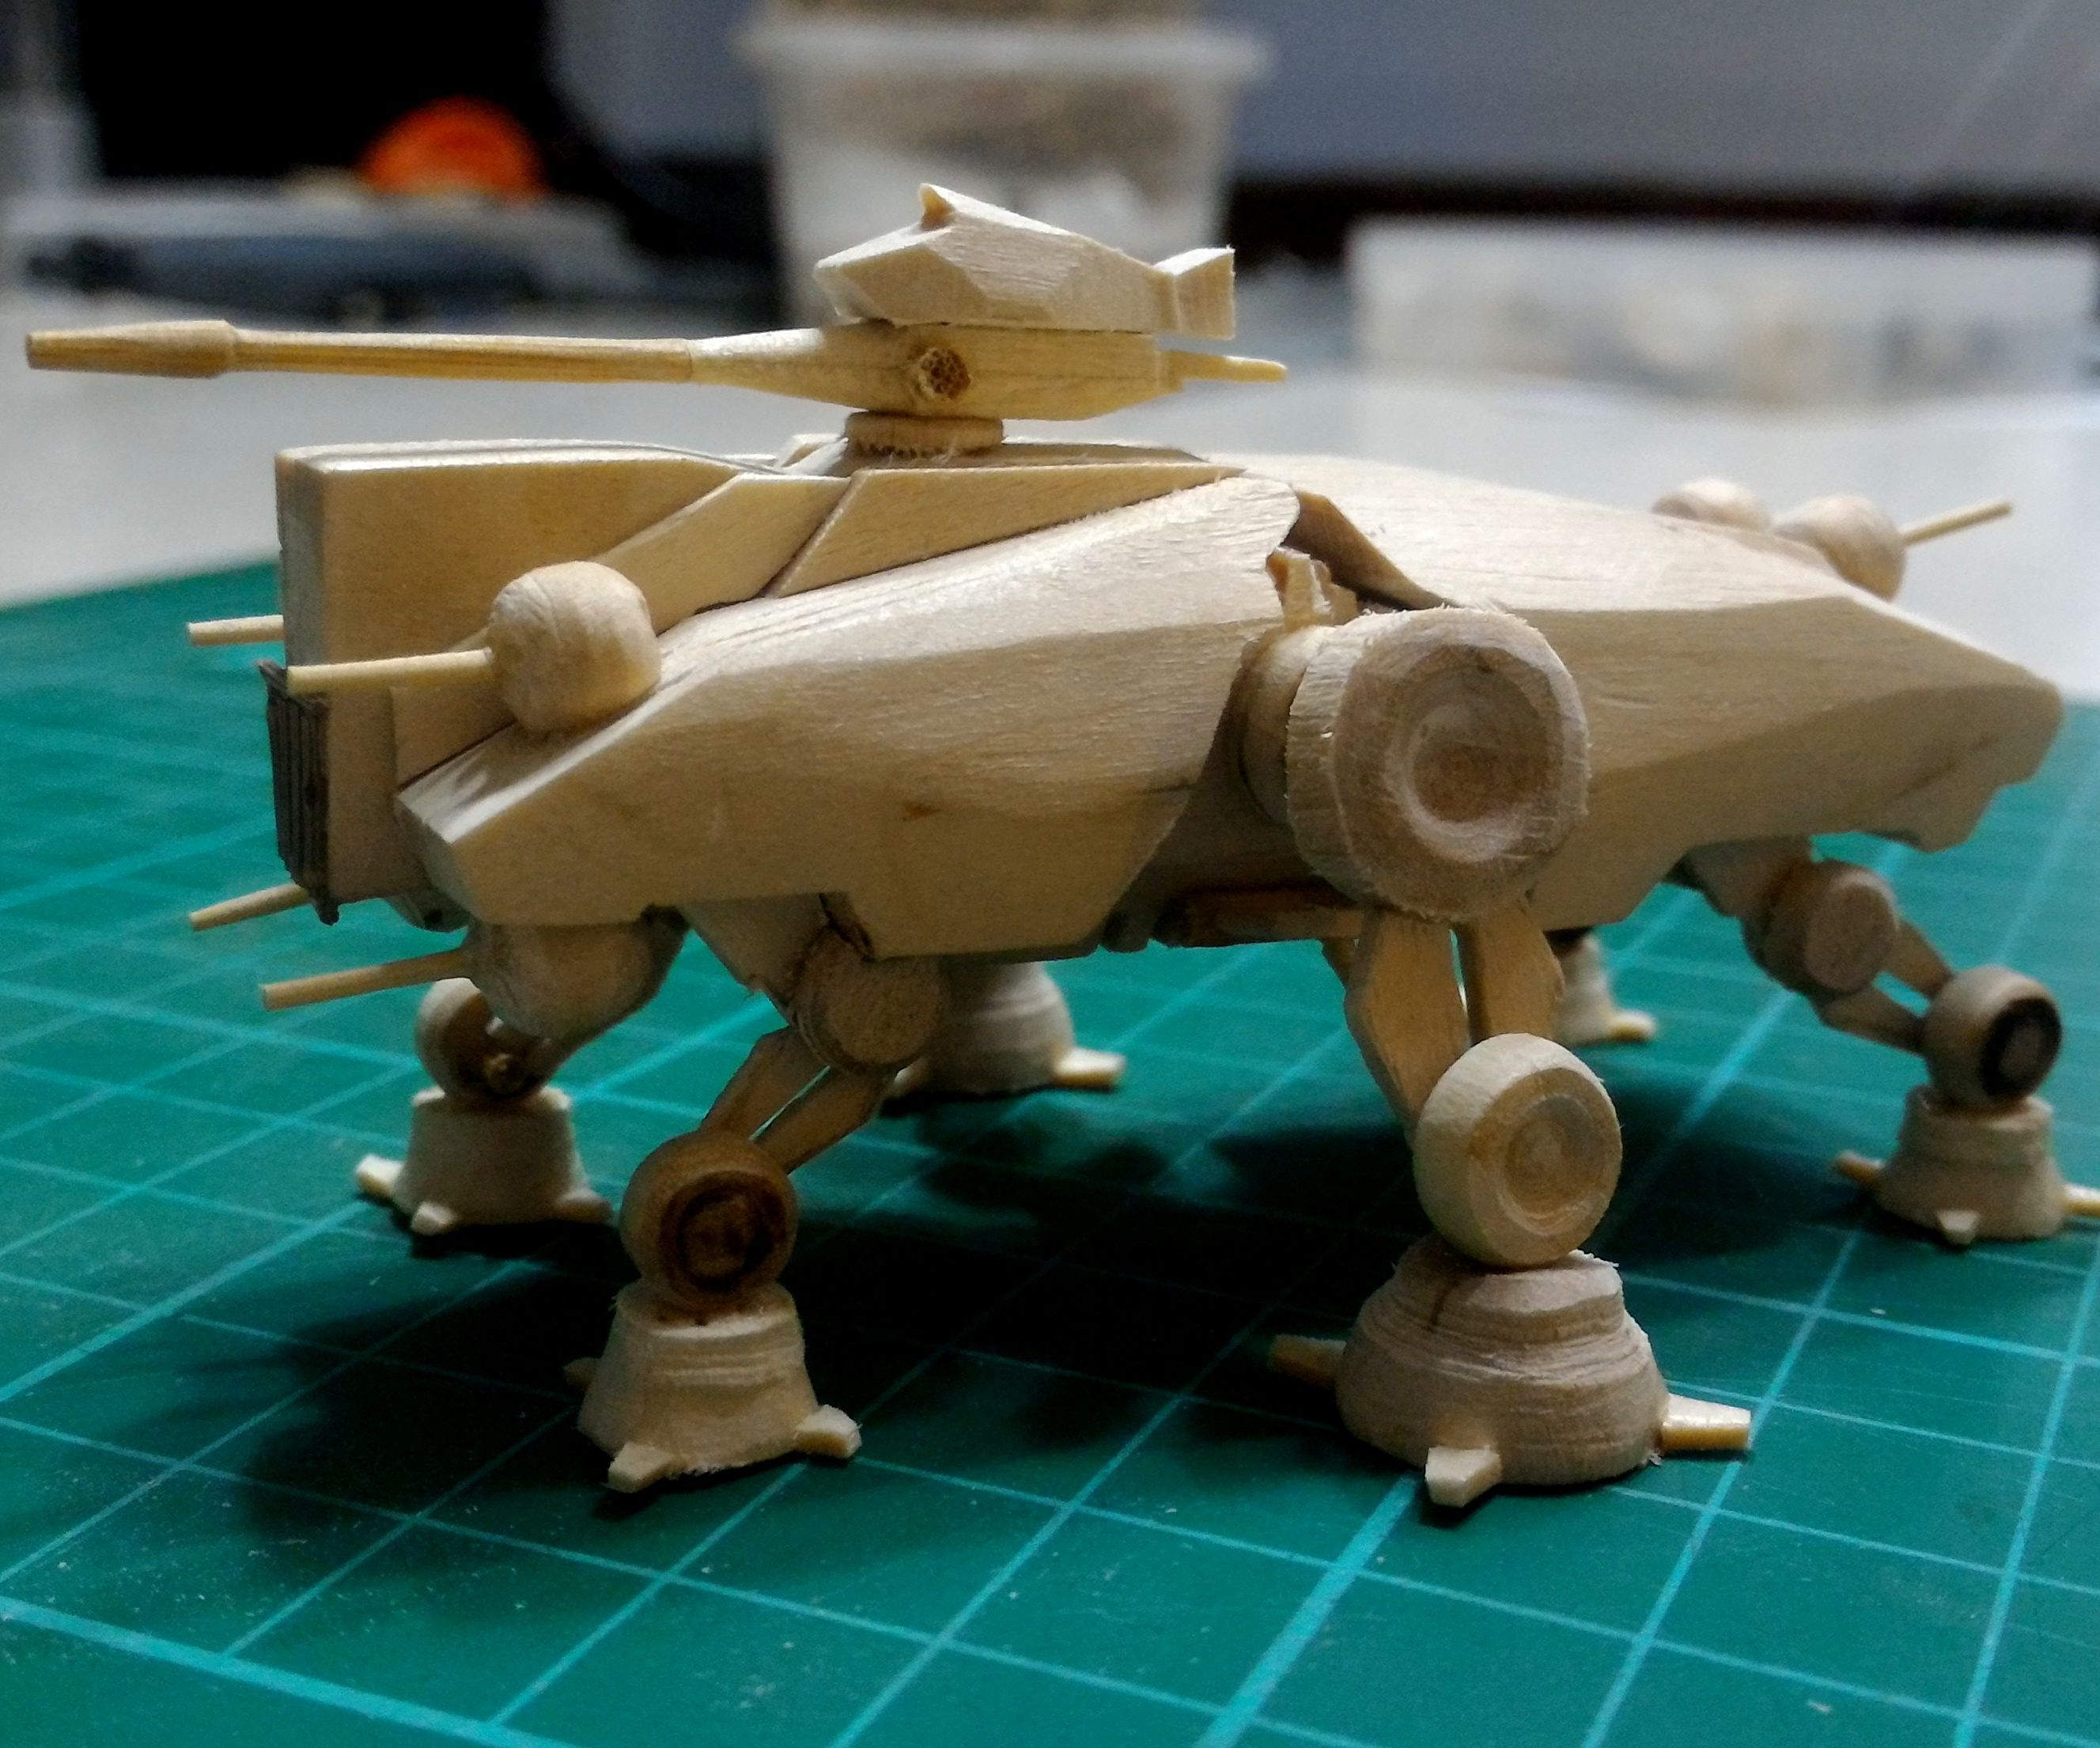 (And still another not so) Mini AT-TE popsicle stick model